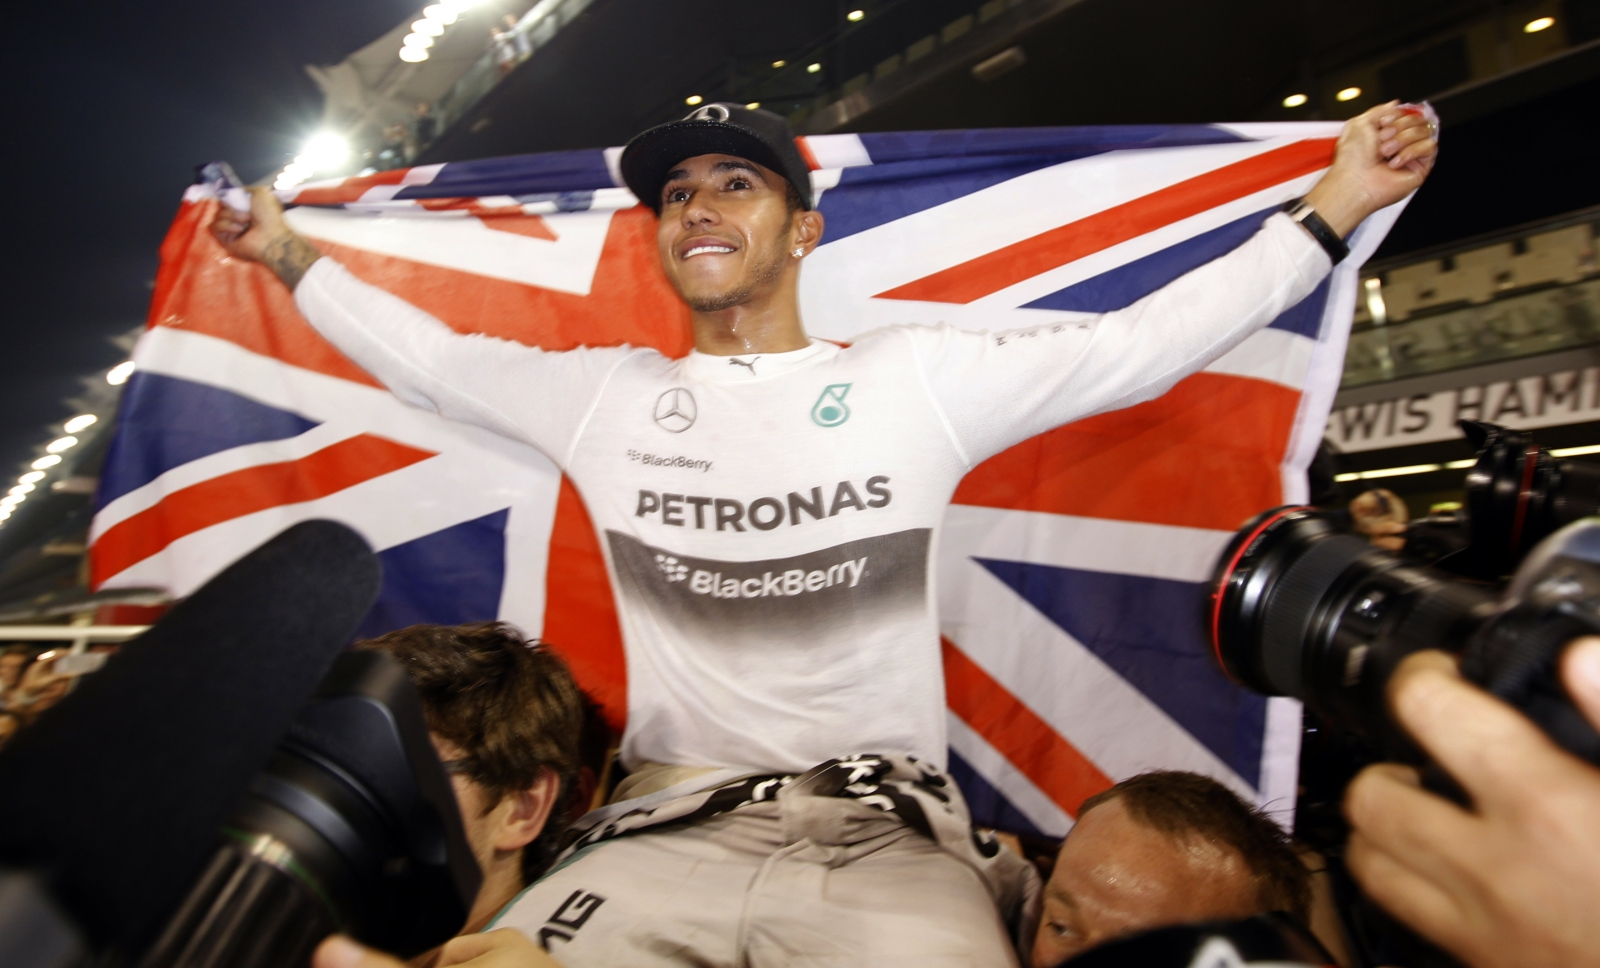 Sport Spotlight: Can Lewis Hamilton Go On to Dominate F1?